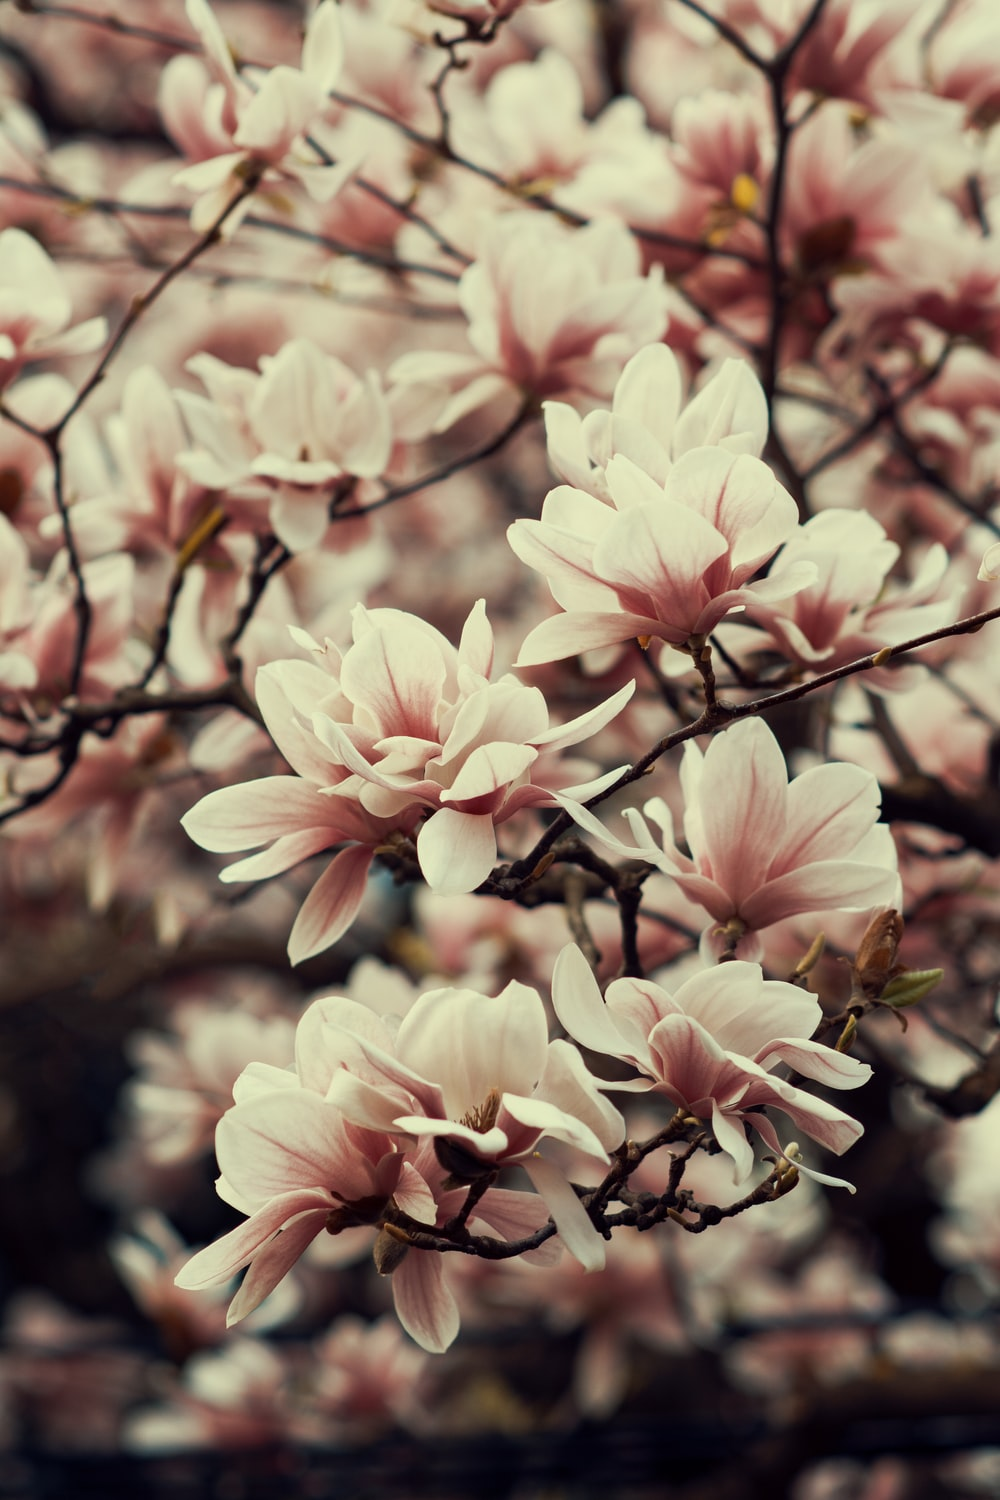 shallow focus photography of pink petal flowers